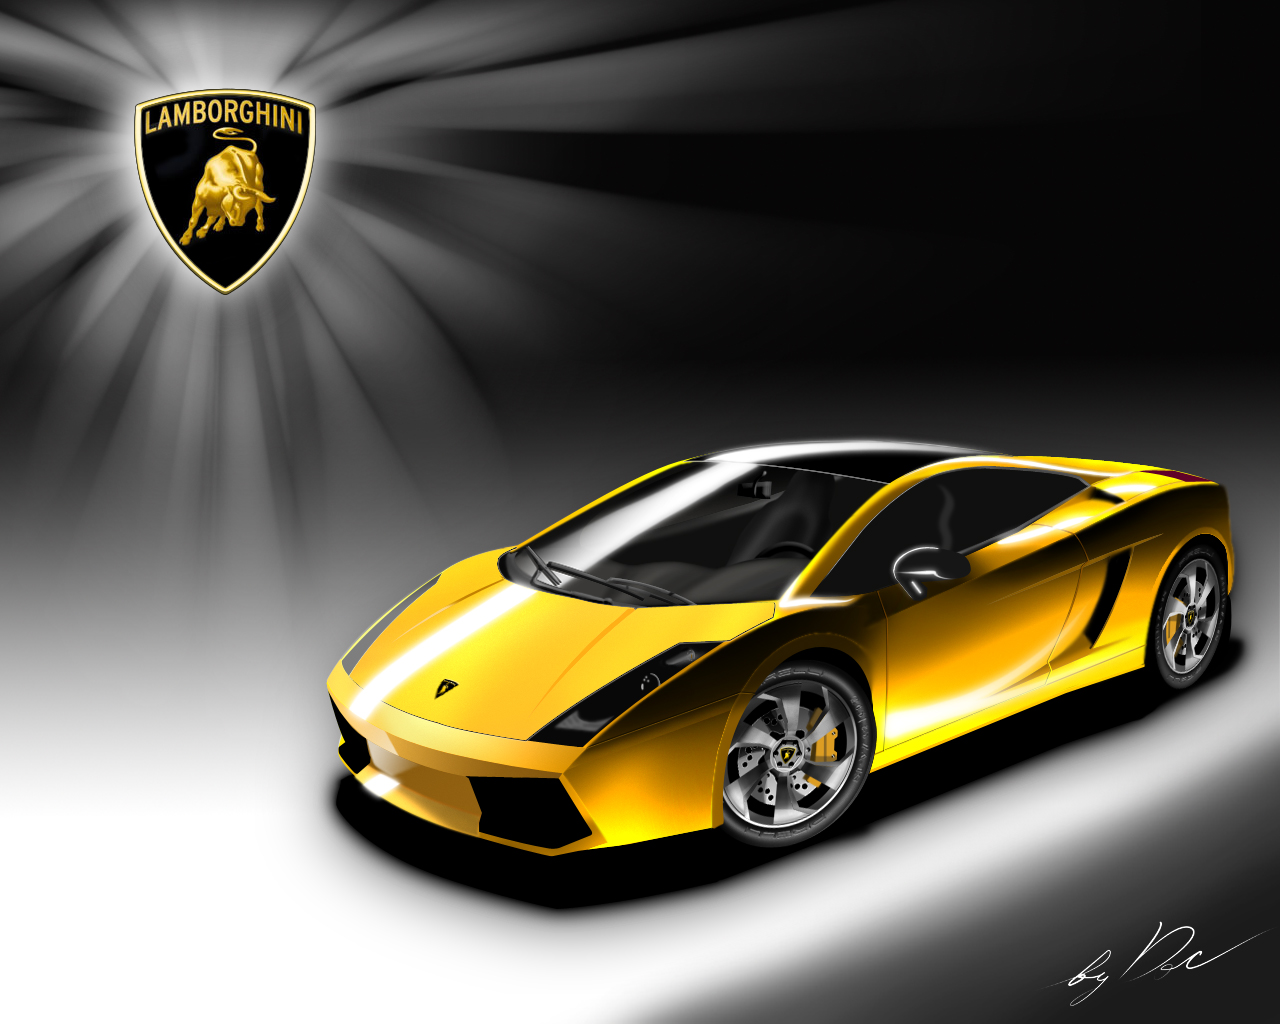 lamborghini cars pictures wallpapers 86 wallpapers wallpapers and backgrounds